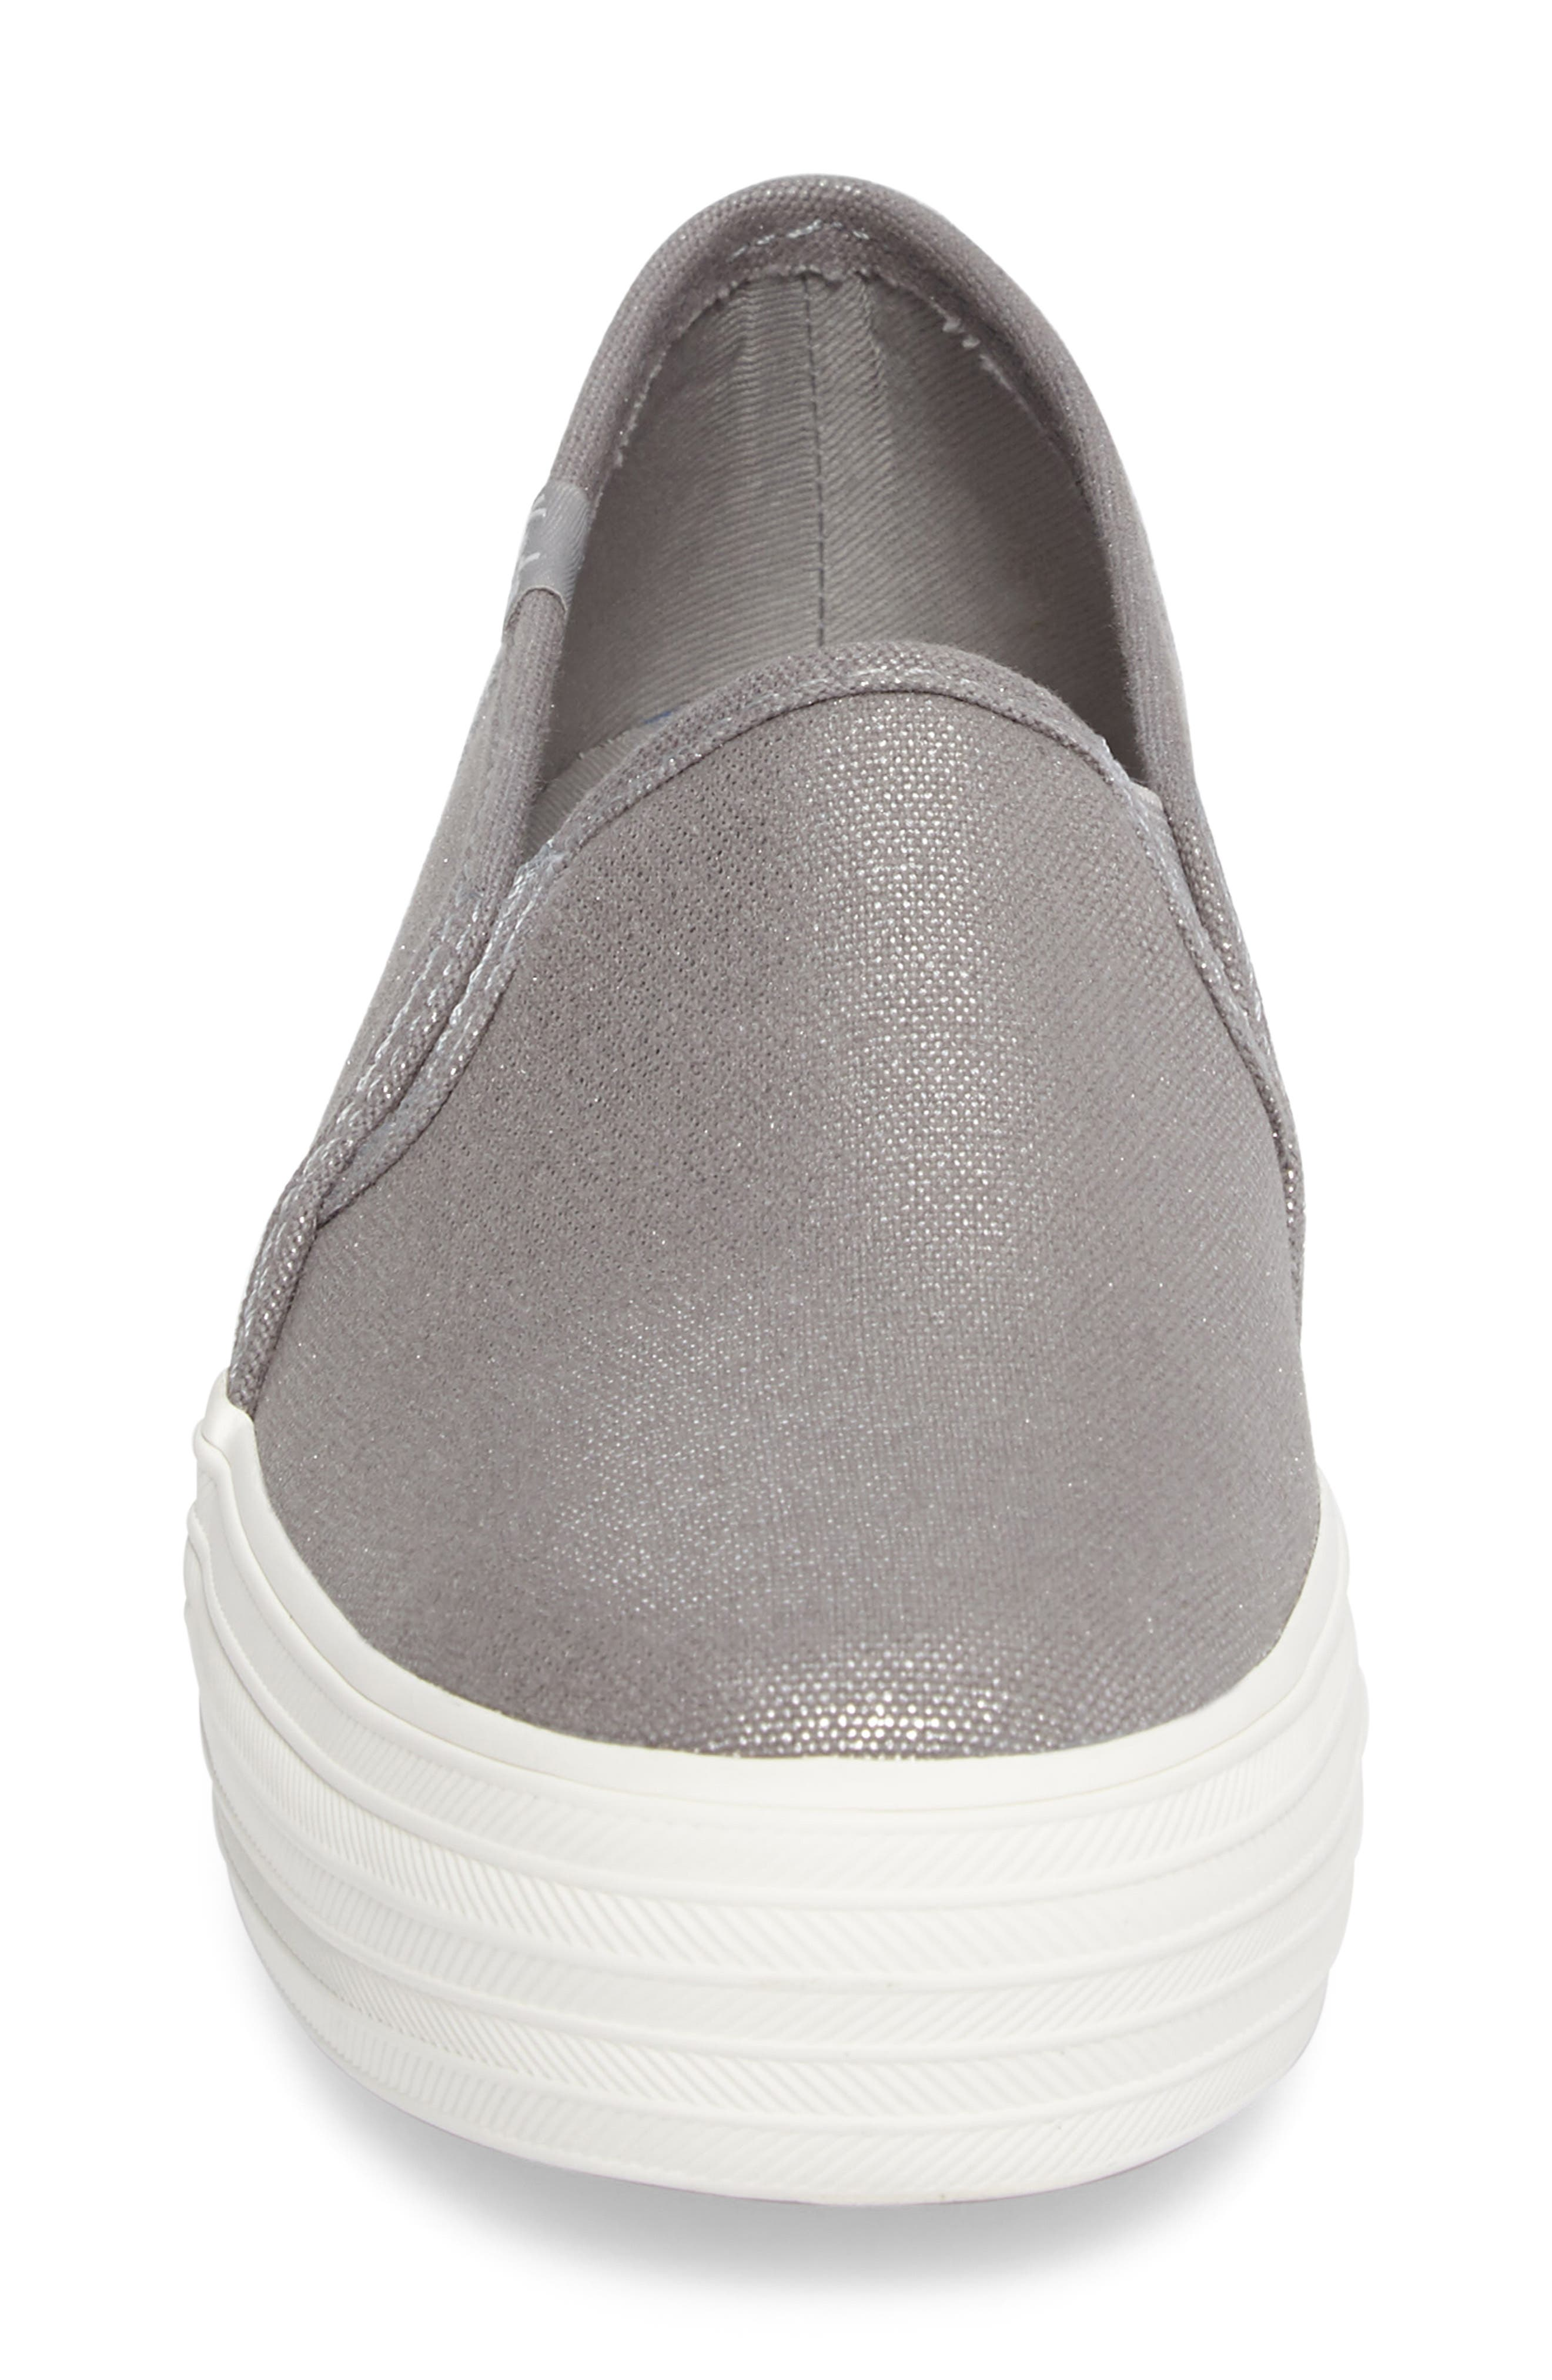 Triple Decker Slip-On Platform Sneaker,                             Alternate thumbnail 4, color,                             Silver